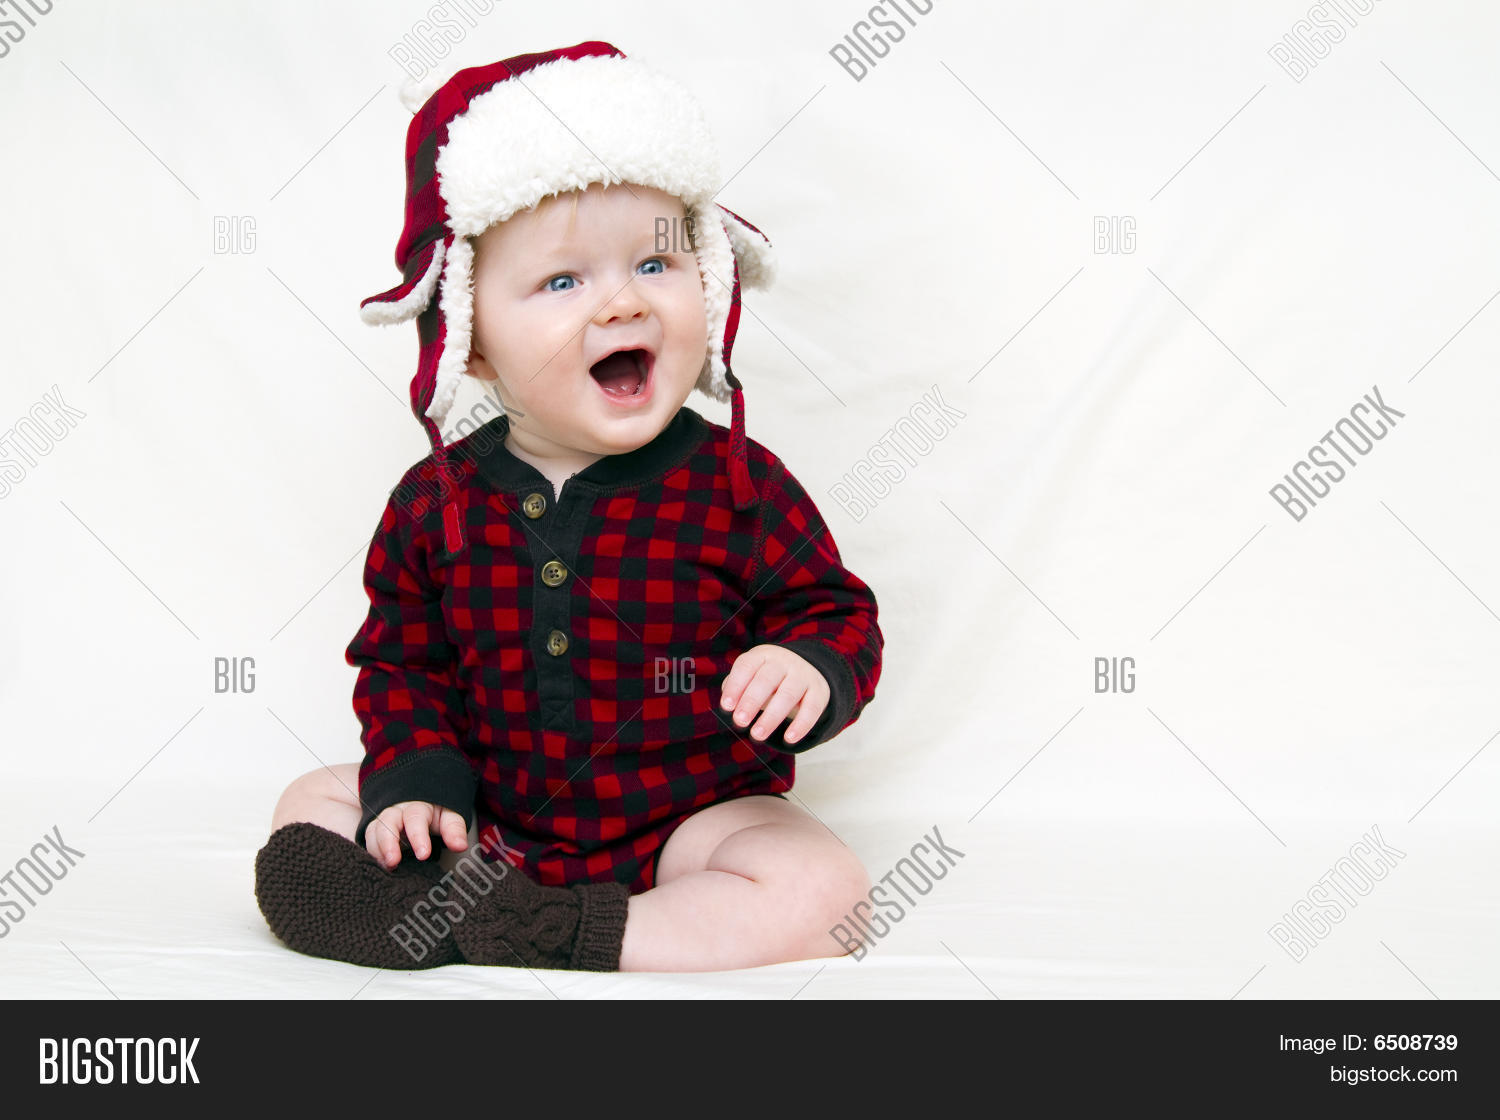 b78e78f43 Christmas Baby With Red Plaid Shirt And Furry Wool Hat, Mouth Open